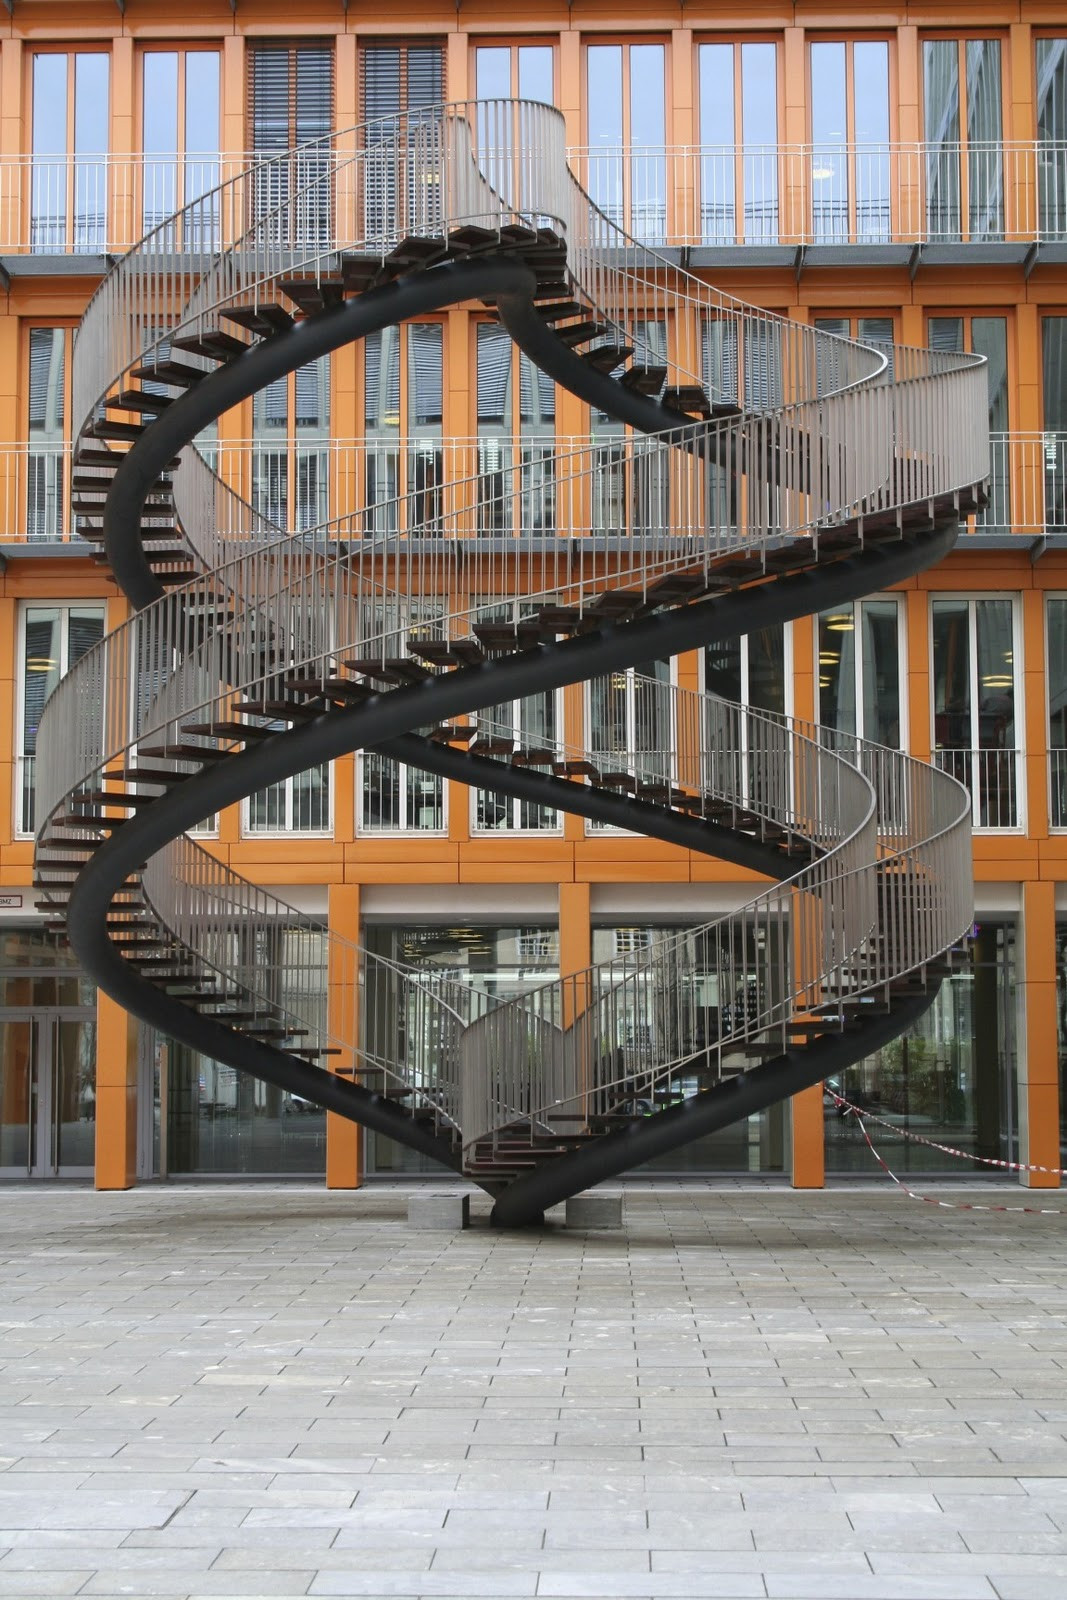 Best ideas about Never Ending Staircase . Save or Pin Not Another Architecture Student NEVERENDING STAIRS Now.